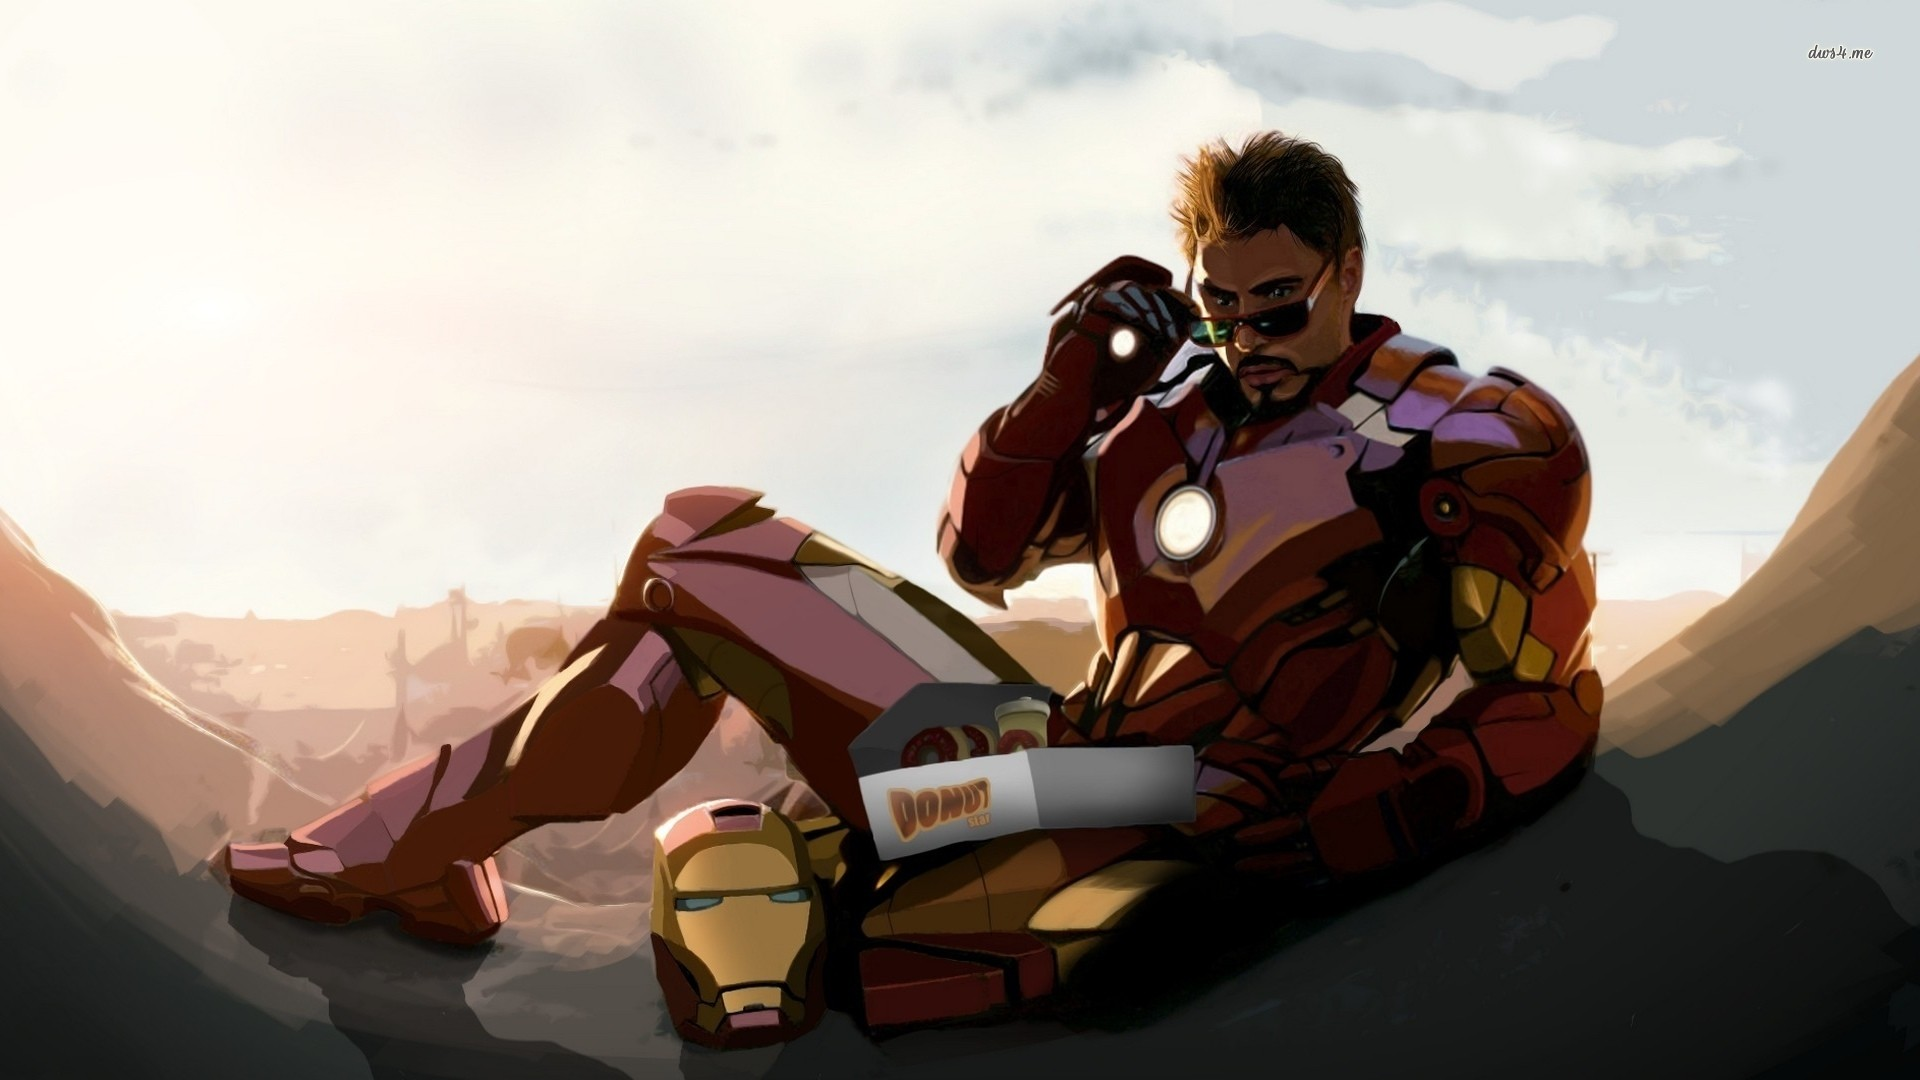 Tony stark wallpaper wallpapertag - Iron man wallpaper anime ...